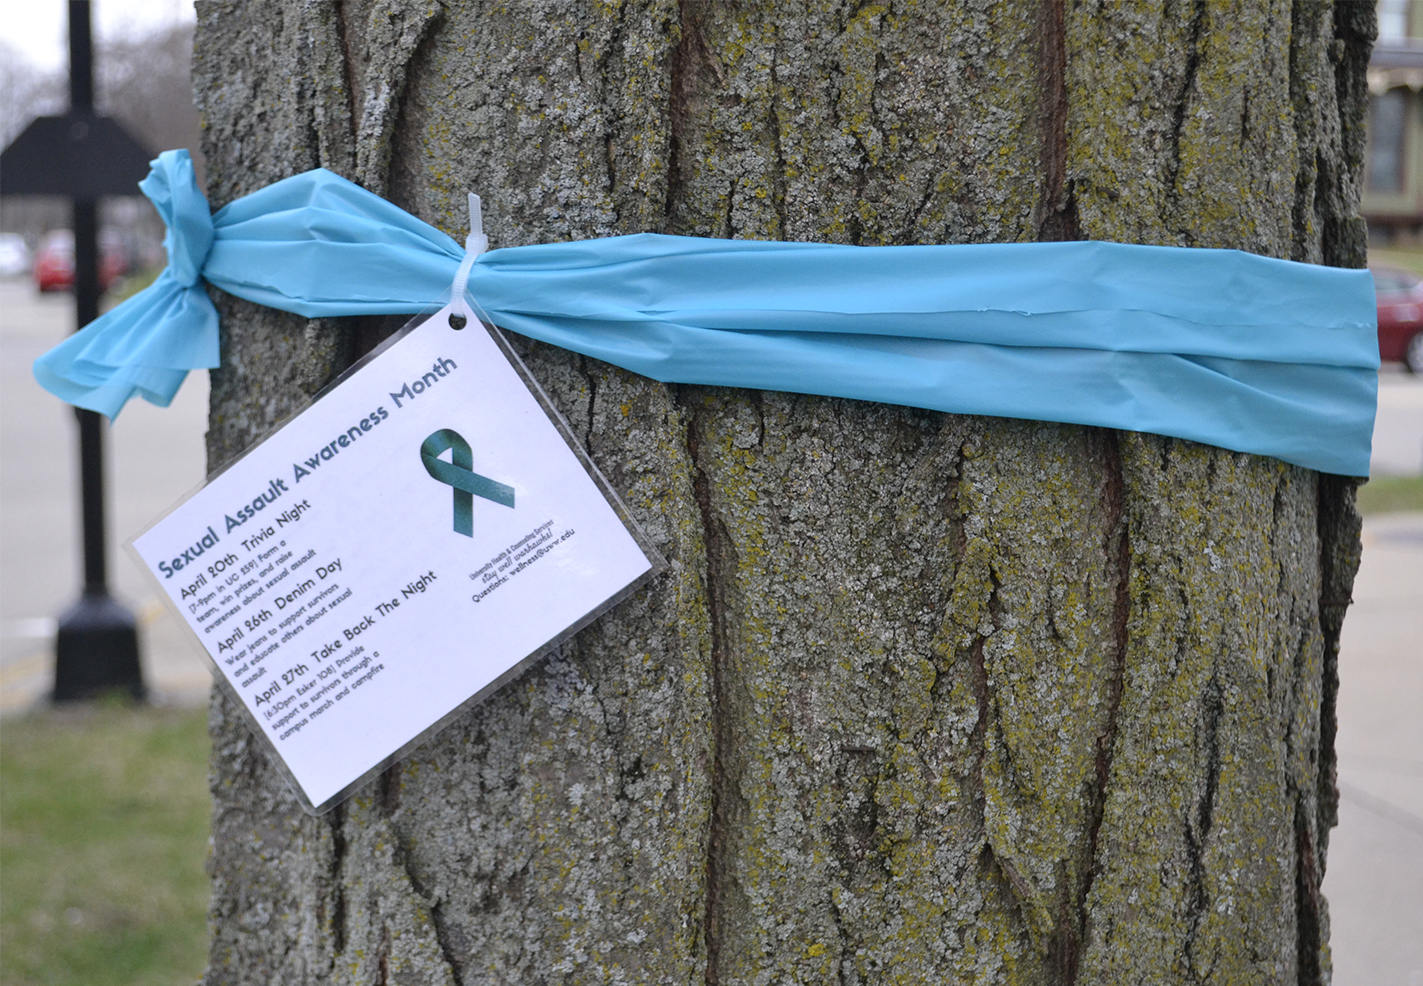 In+recognition+of+April%E2%80%99s+Sexual+Assault+Awareness+Month%2C+trees+on+the+UW-Whitewater+campus+are+decorated+with+blue+ribbons+to+raise+awareness+about+stopping+sexual+assault+on+campus.+